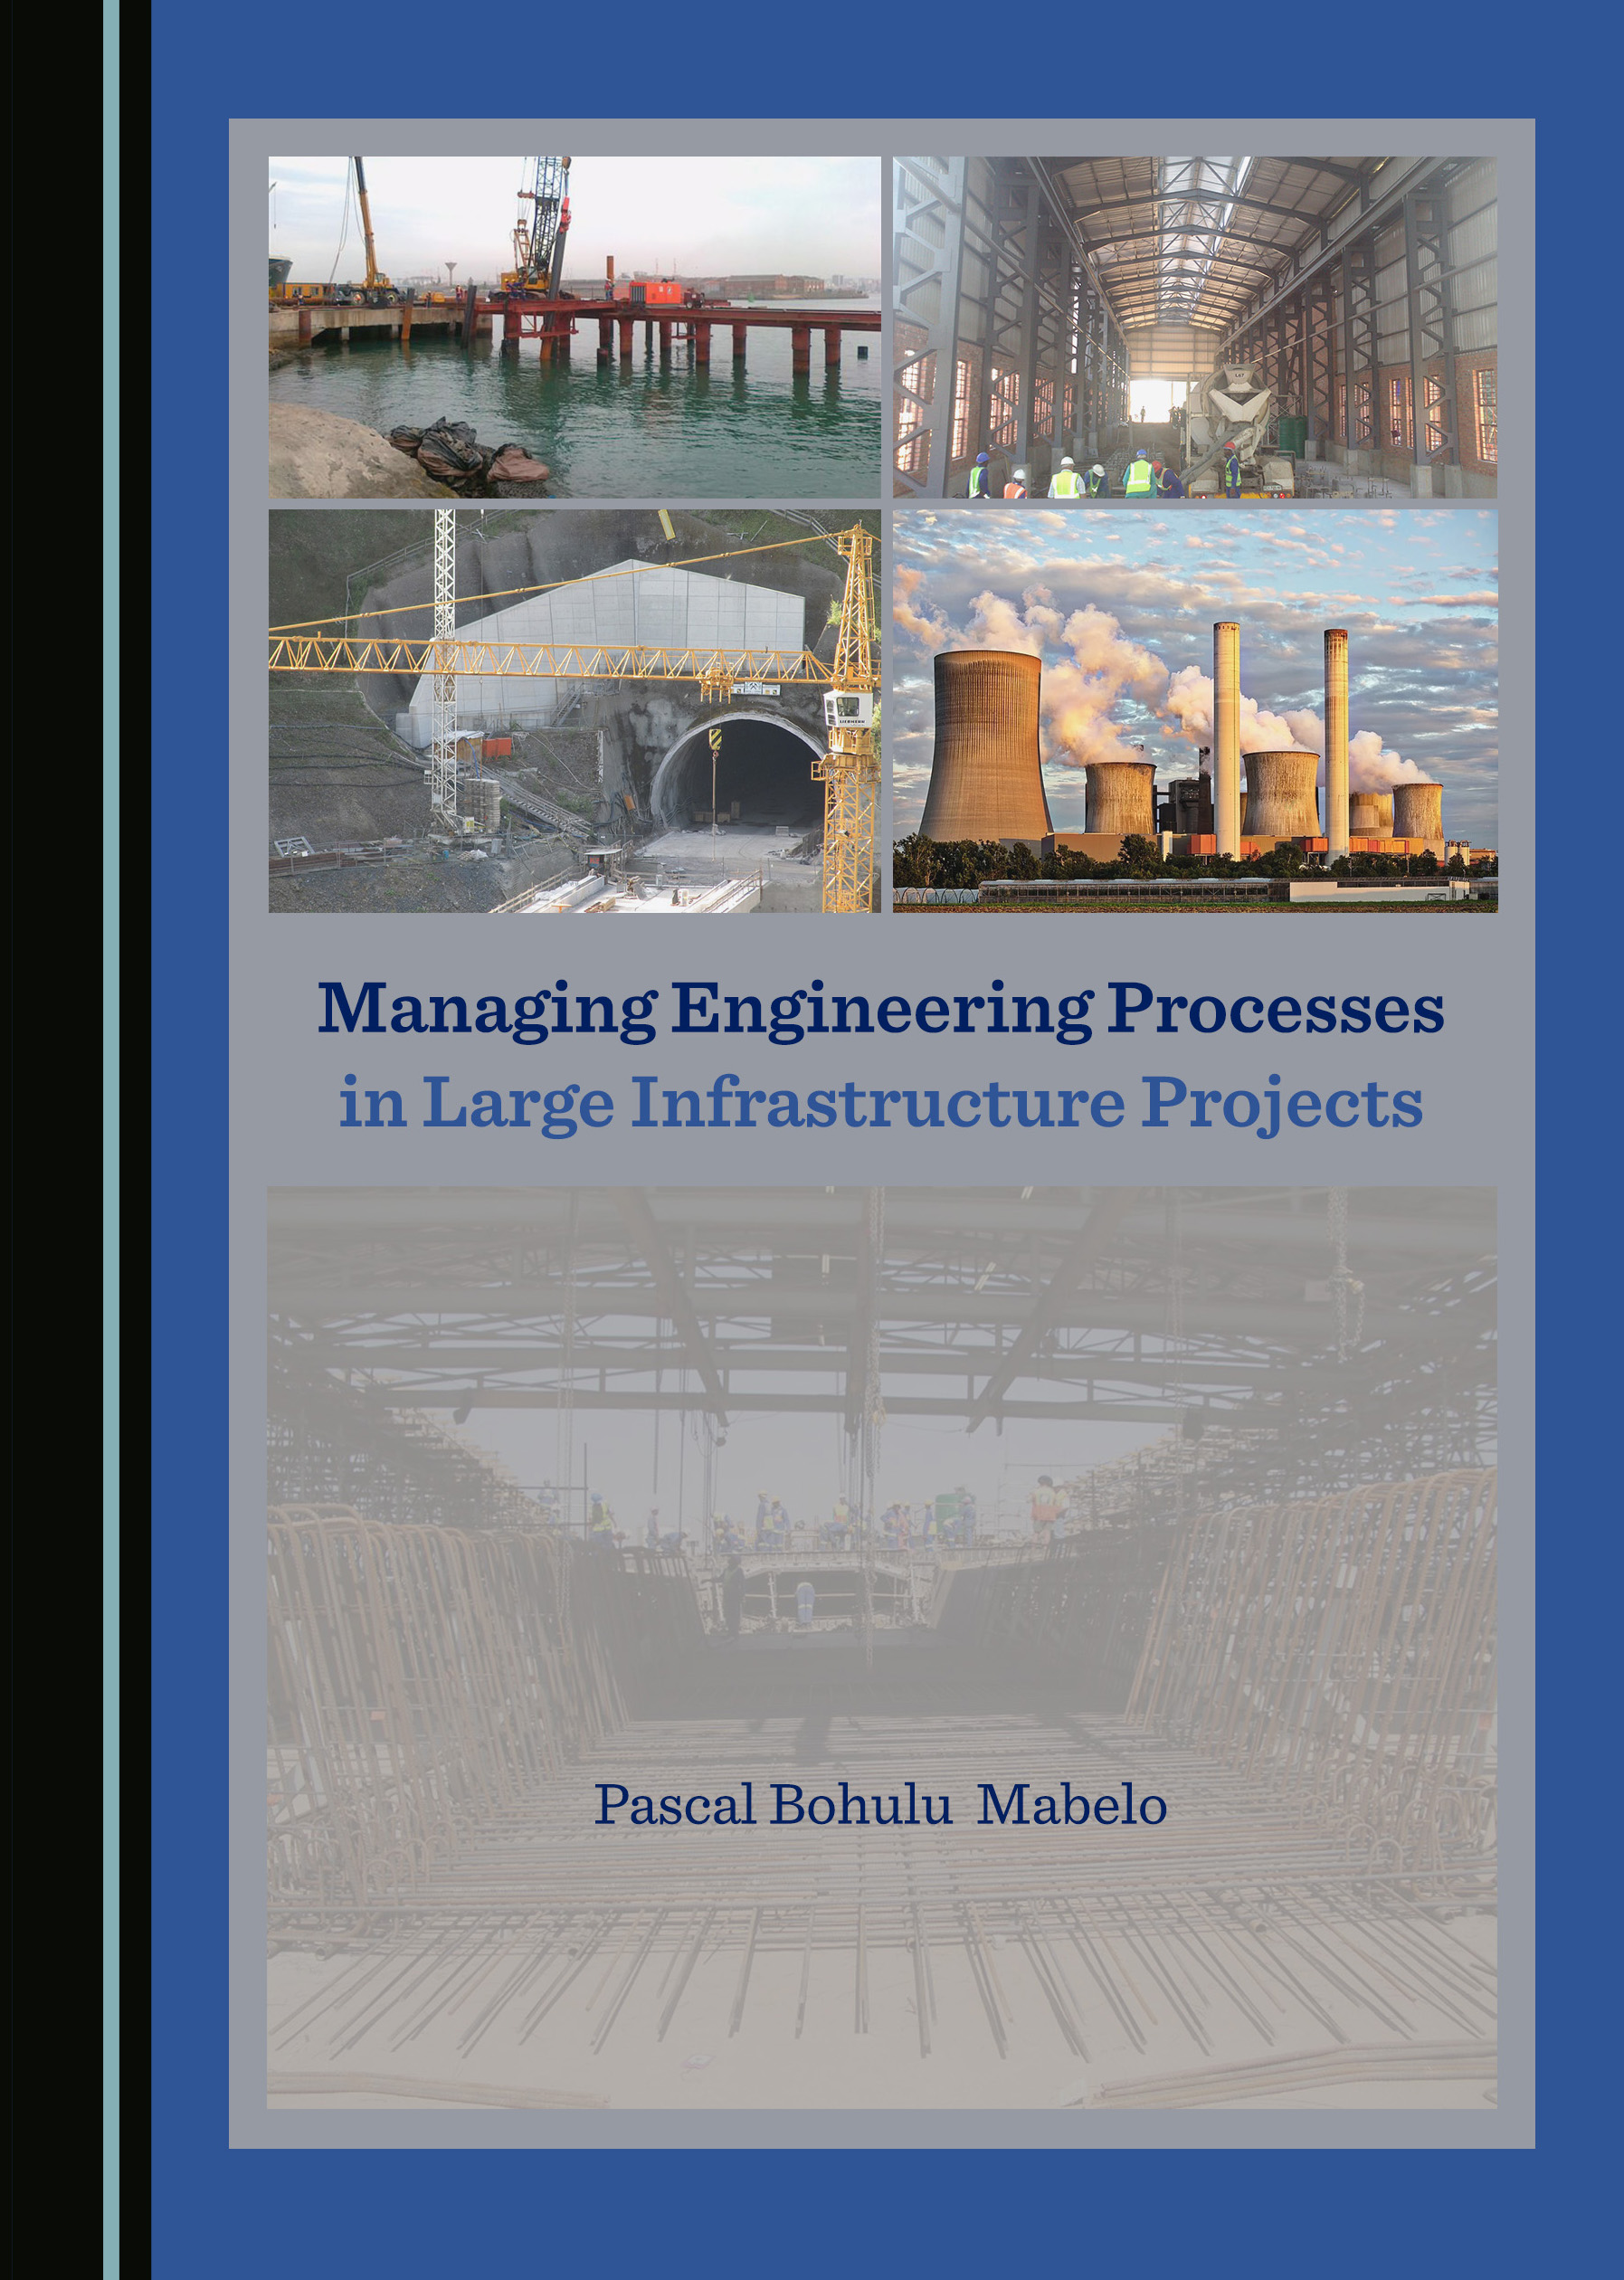 Managing Engineering Processes in Large Infrastructure Projects